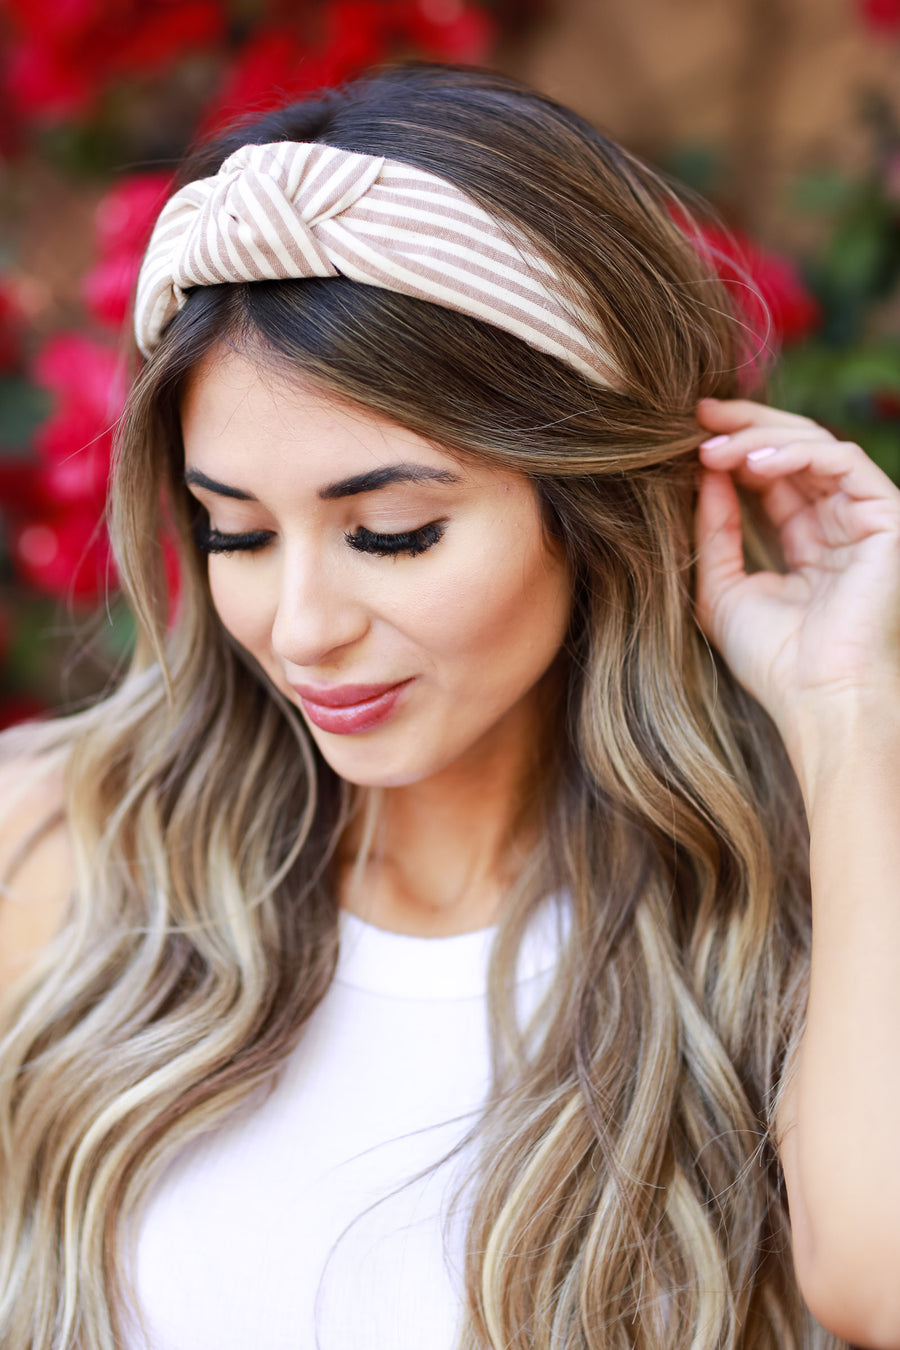 Kelly Striped Top Knot Headband - Tan womens trendy striped top knot comfortable headband closet candy front